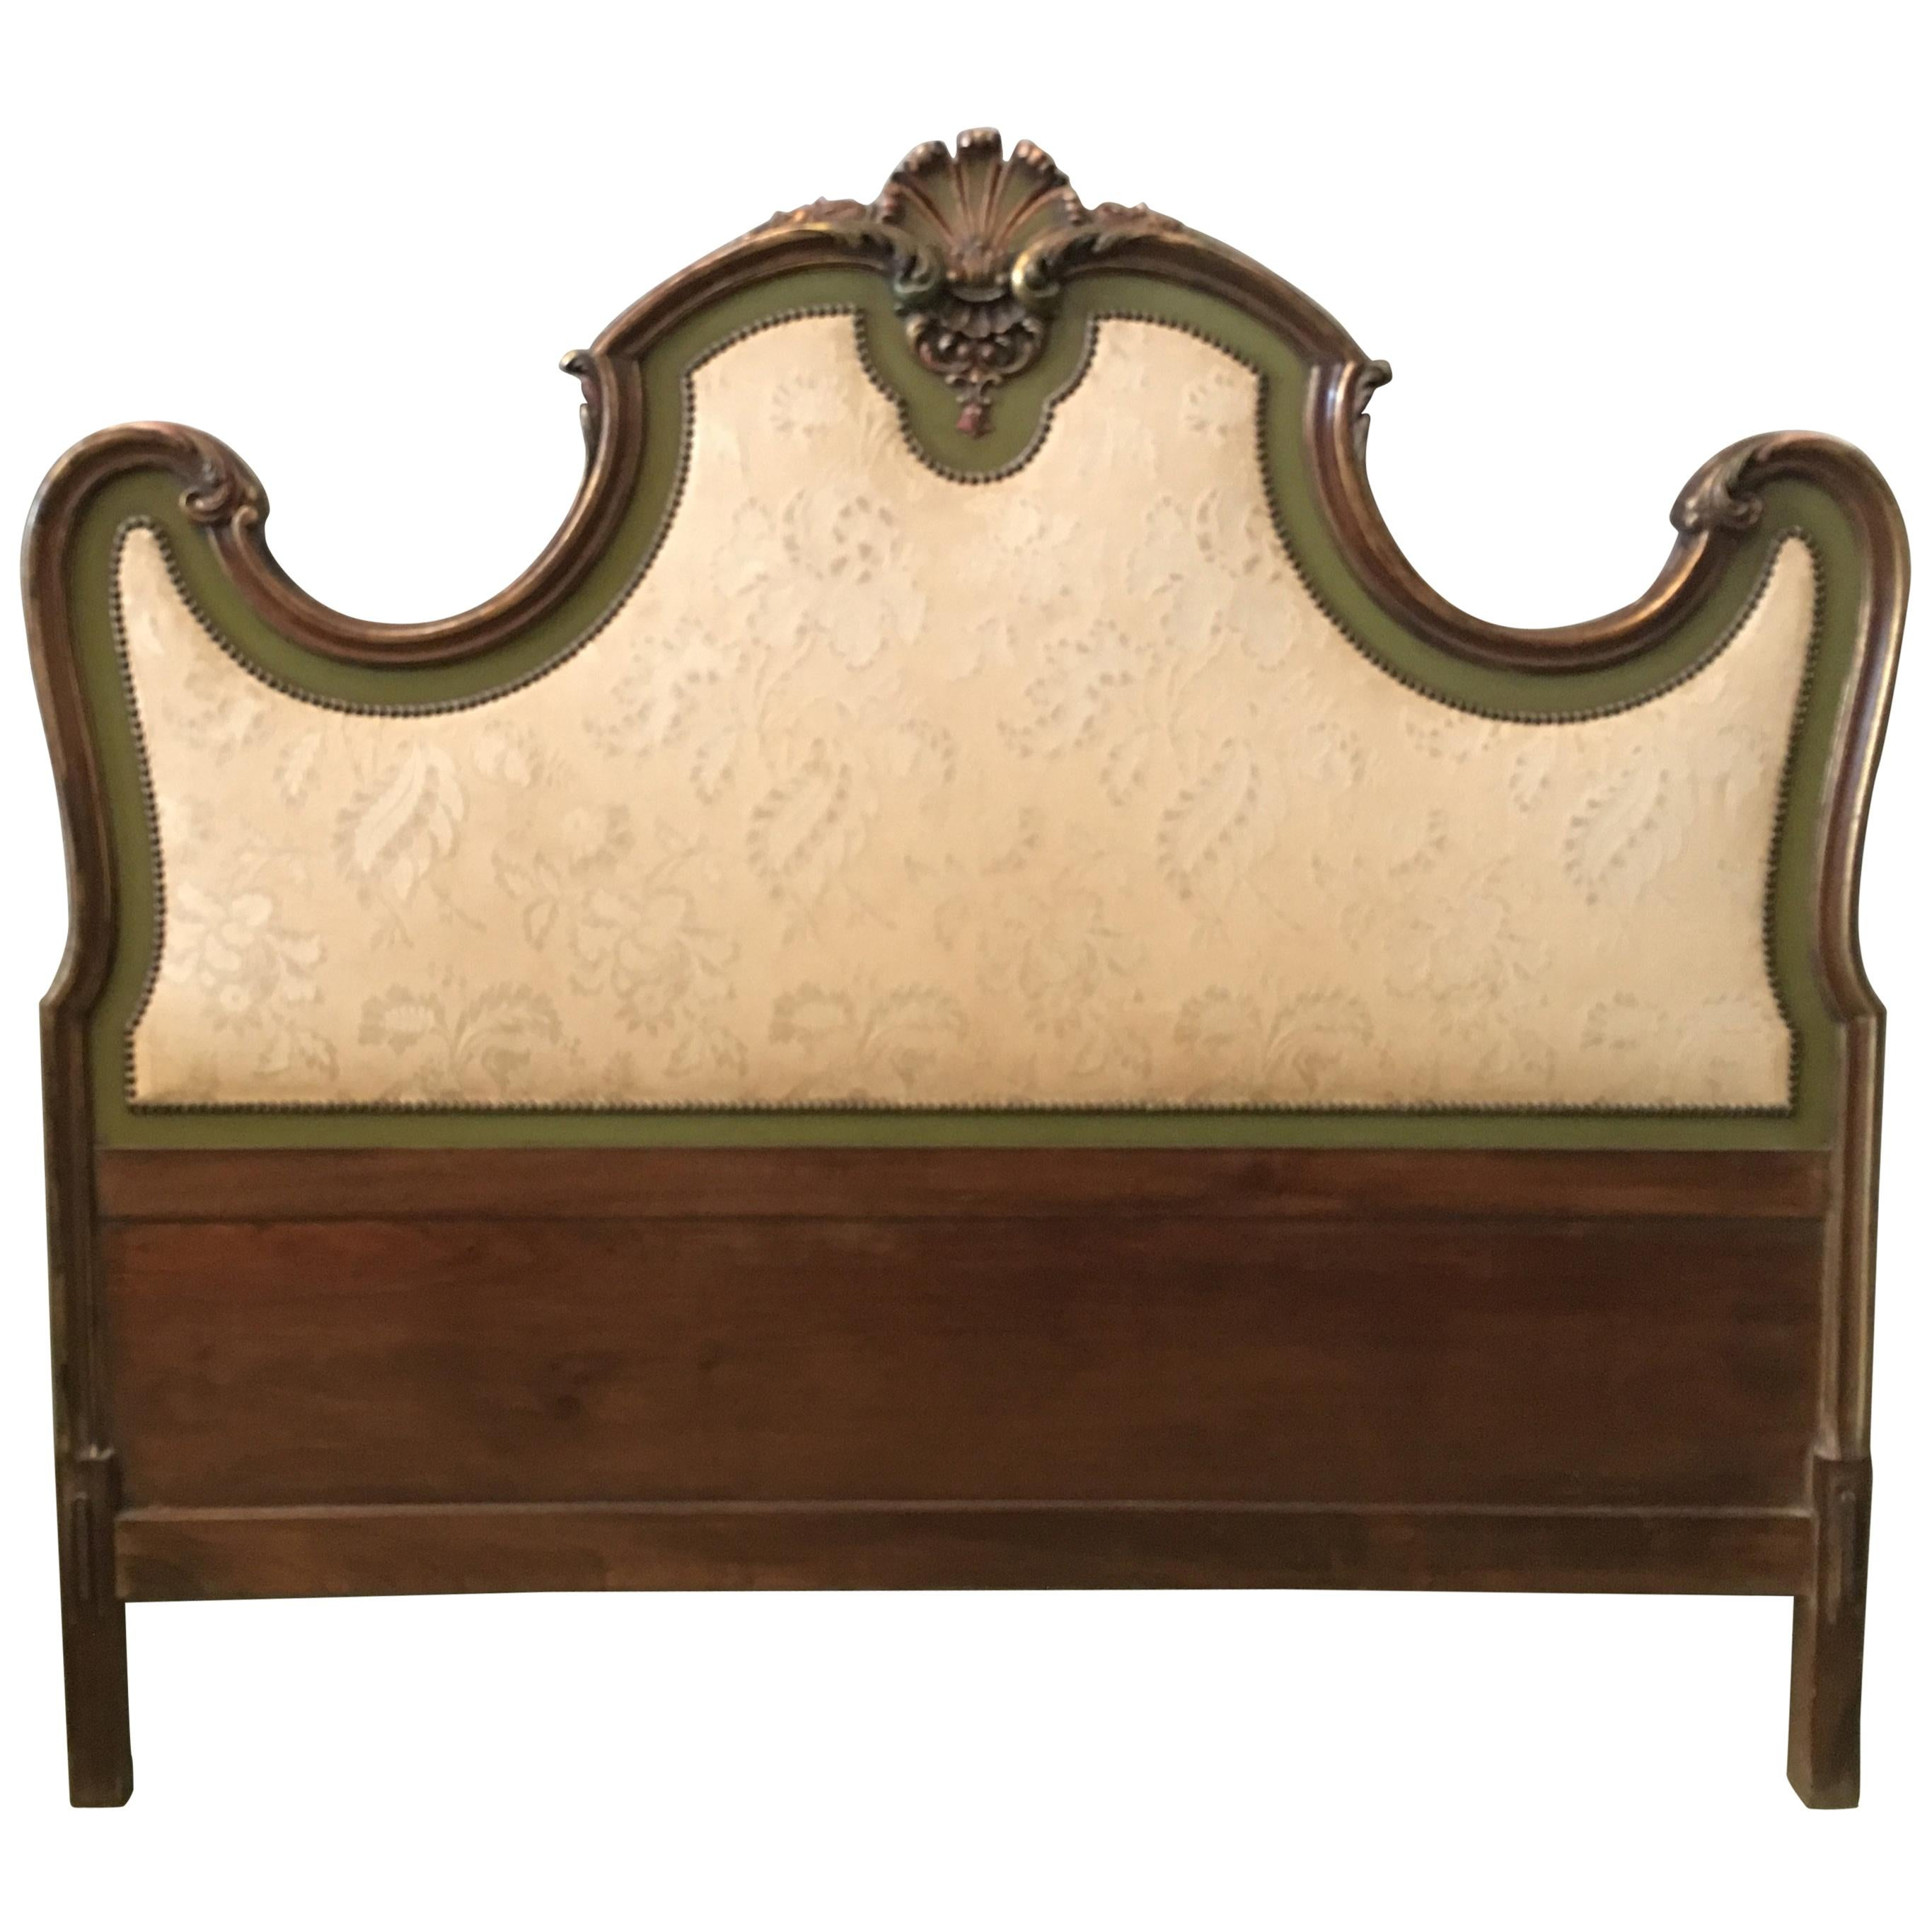 20th Century Italian Baroque Style Carved and Gilded Wood with Fabric Headboard